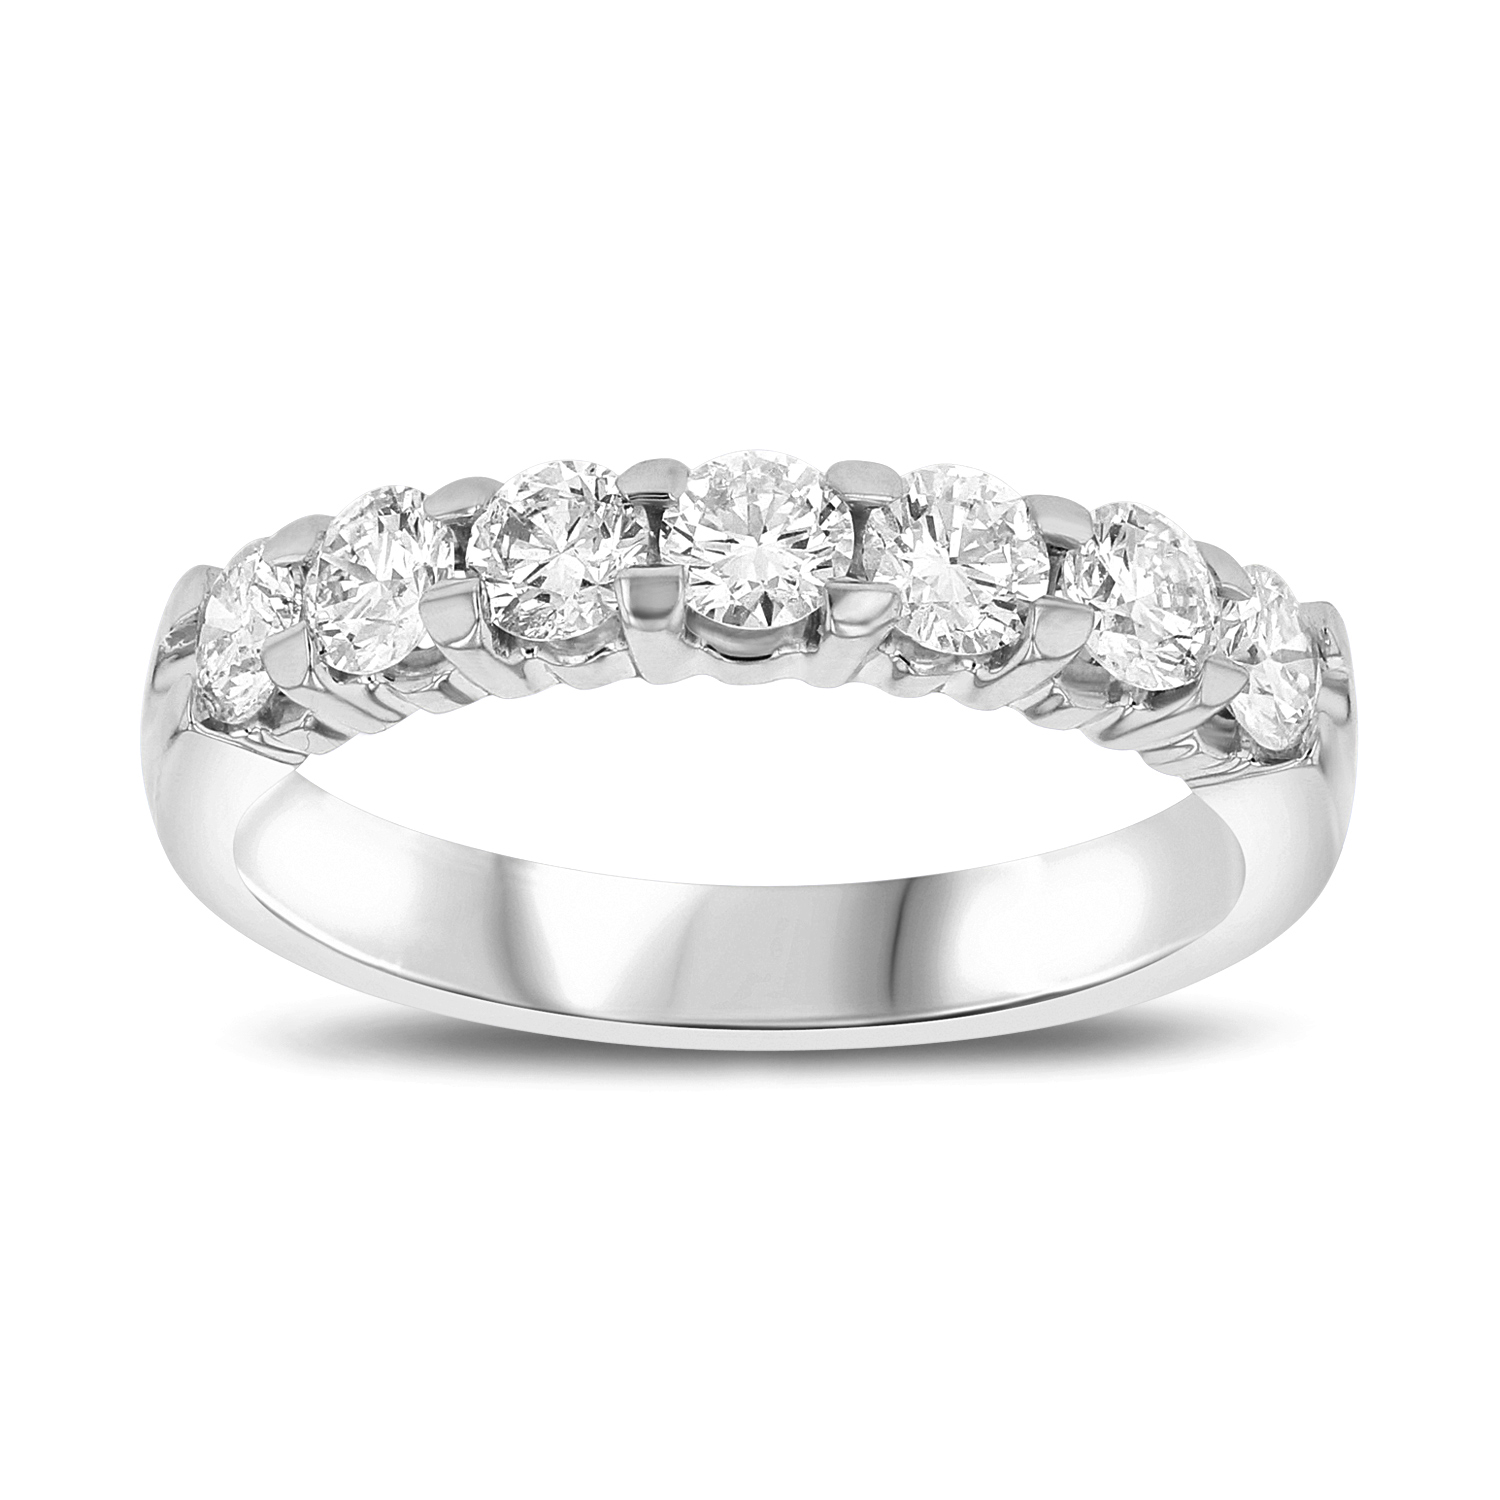 View 1.00ct tw 7 Stone Round Diamonds Shared Prong Anniversary or Wedding Band 14k Gold Bridal Ring H-J, SI